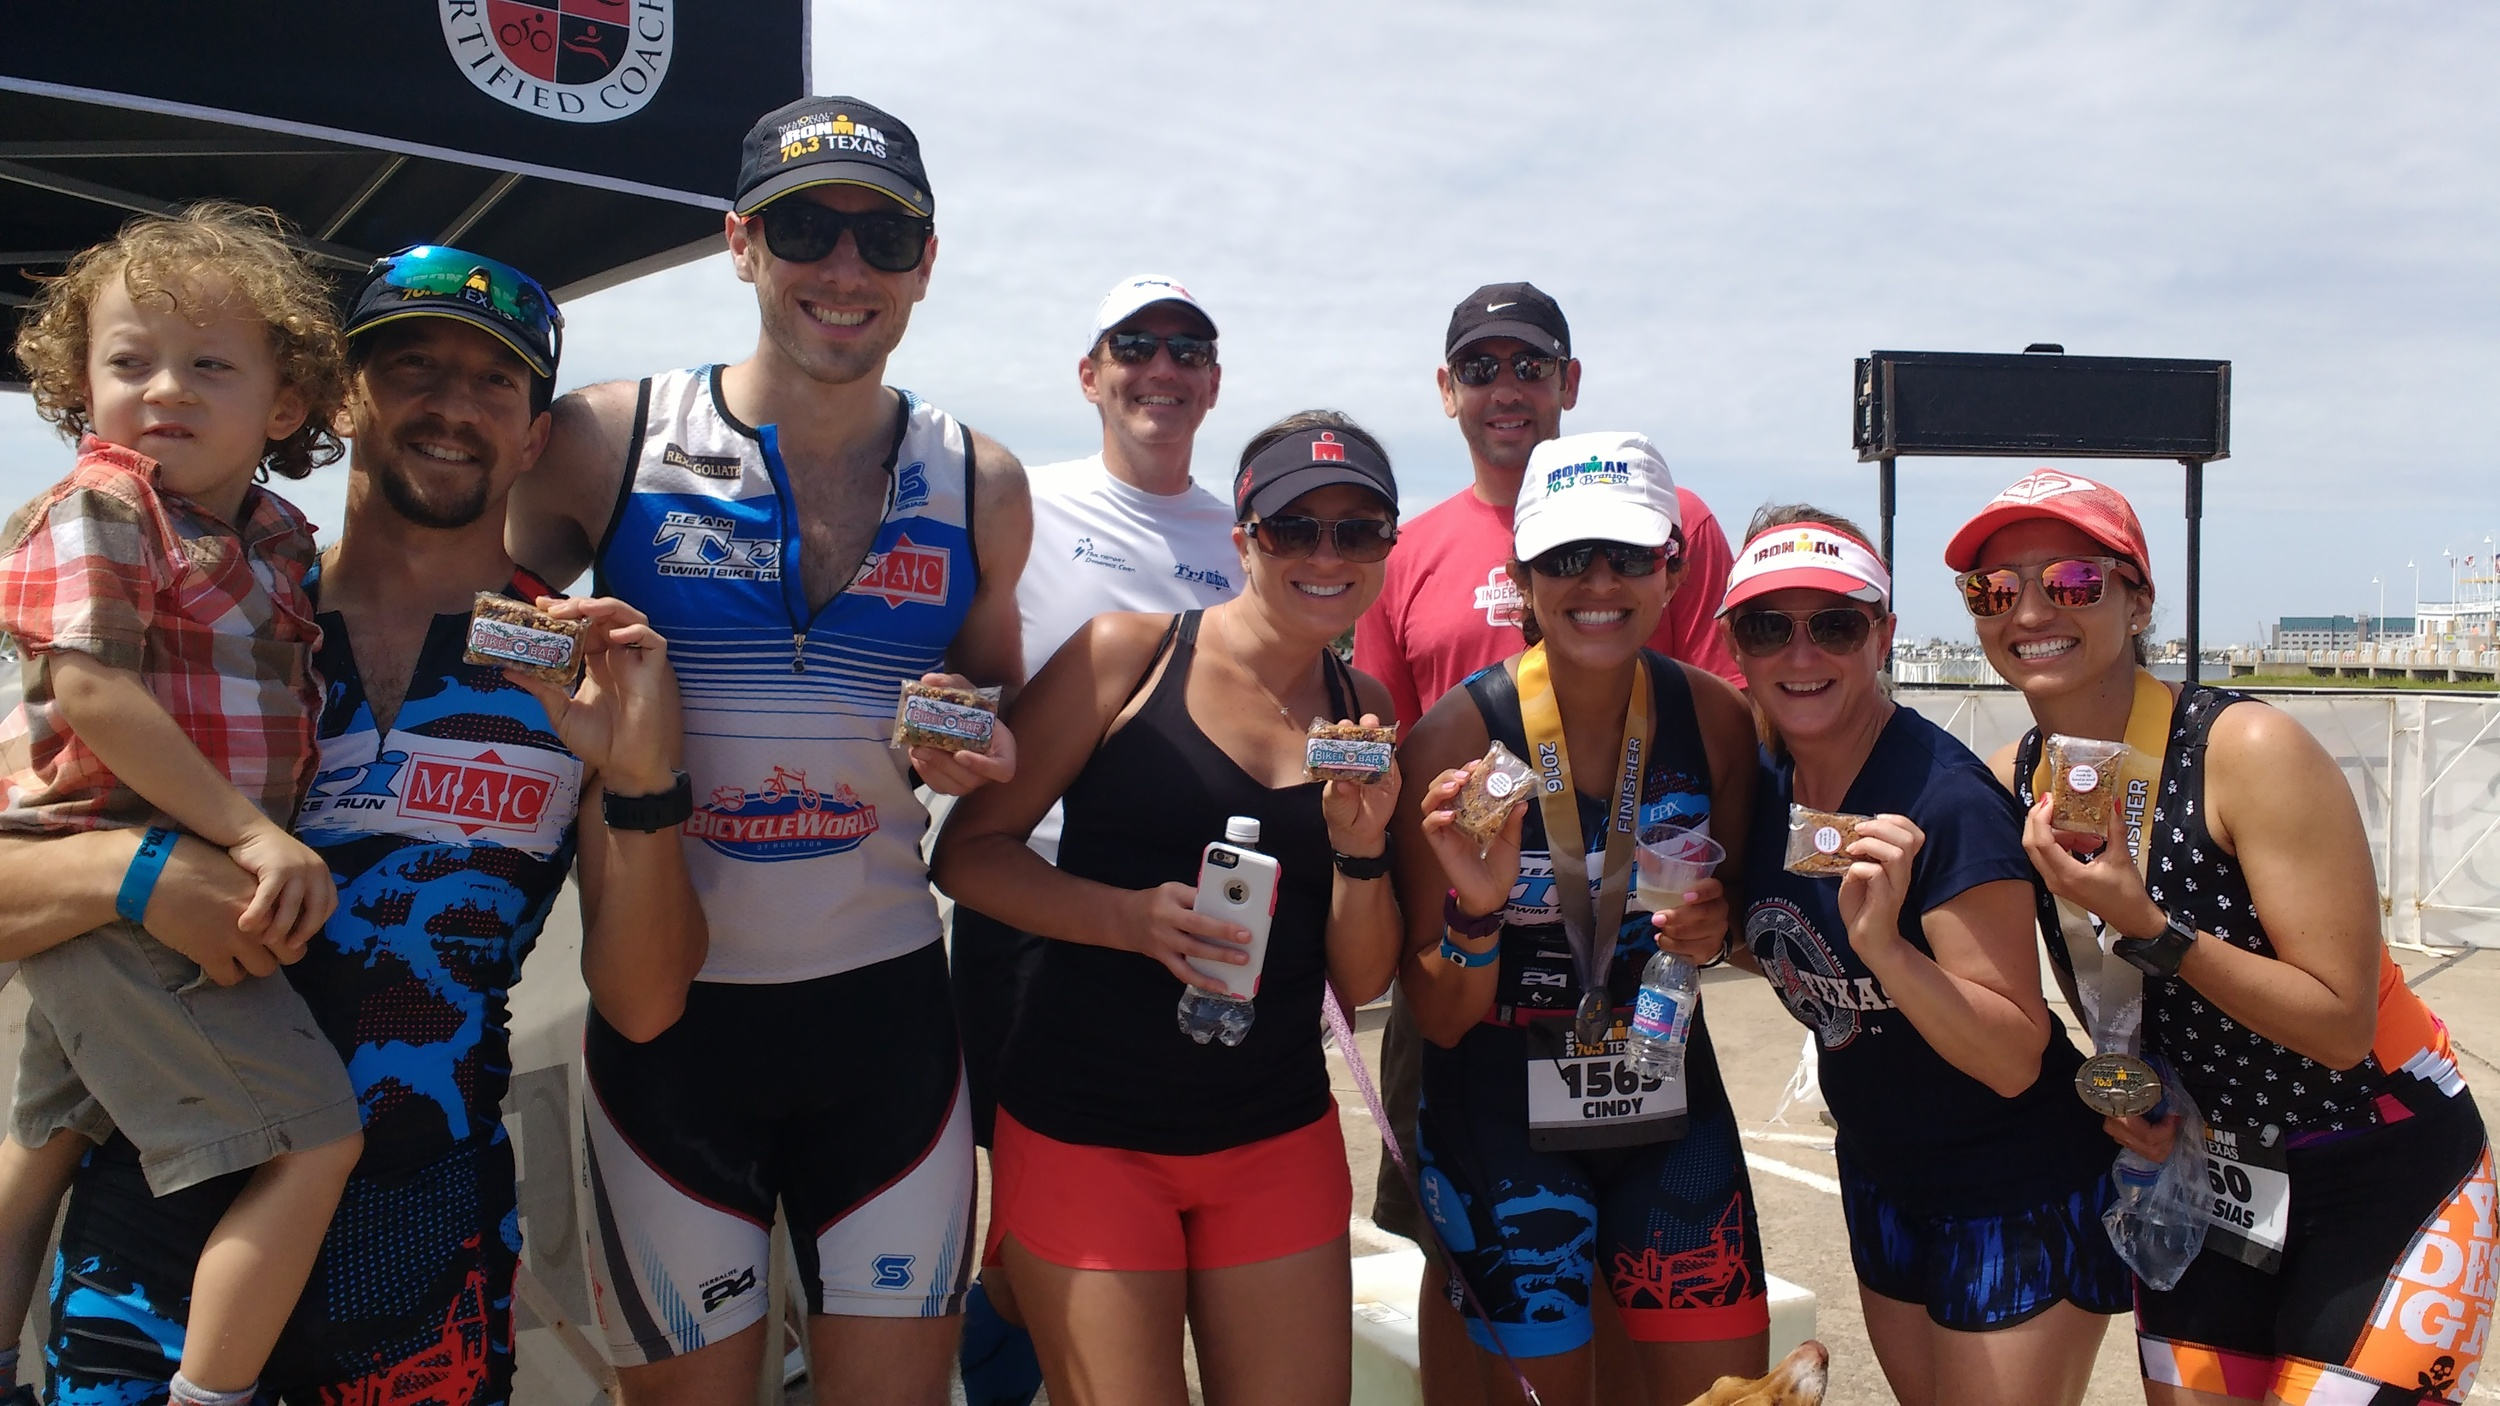 Another awesome photo with a group of Team TriMAC athletes, fresh from the finish line at Ironman 70.3 Texas in Galveston on April 9, 2016.